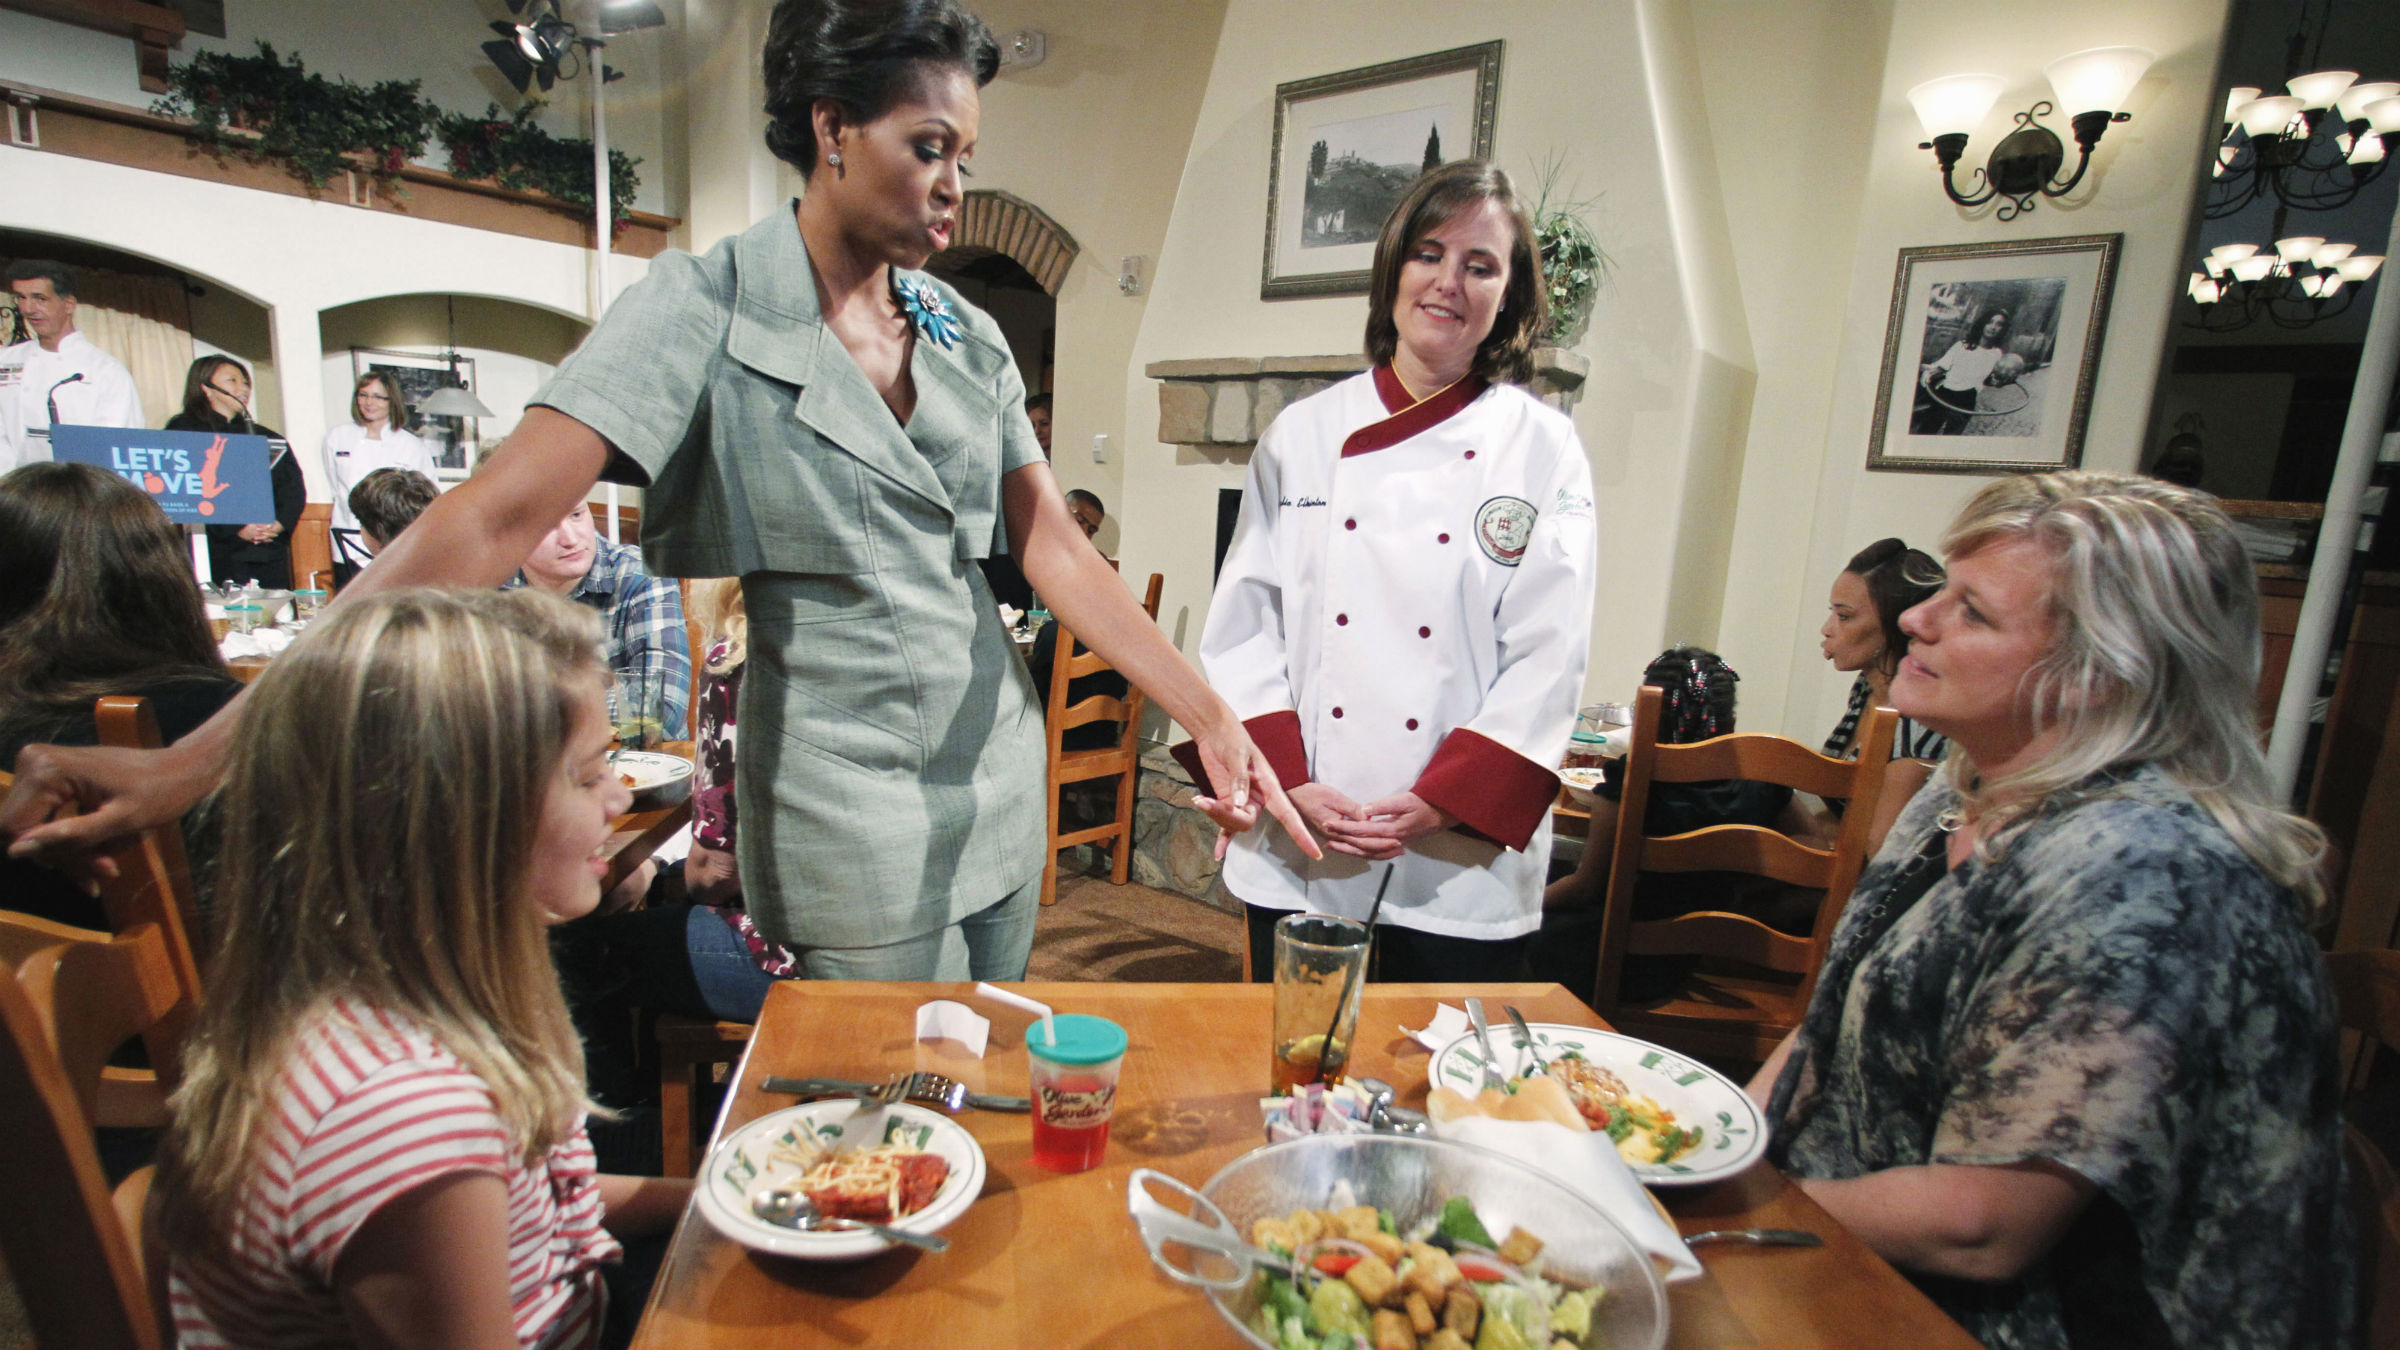 First Lady Michelle Obama, accompanied by Darden chef Julie Elkinton, second from right, talks to Charisse McElroy, right, and her daughter Jacqueline McElroy, 9, during a Let's Move! event in one of Darden's national restaurants in Hyattsville, Md., Thursday, Sept. 15, 2011. The first lady announced Darden Restaurants' commitment to reduce its calorie and sodium footprint and to provide greater choice and variety on its children's menus and make healthy options the default choice whenever possible.